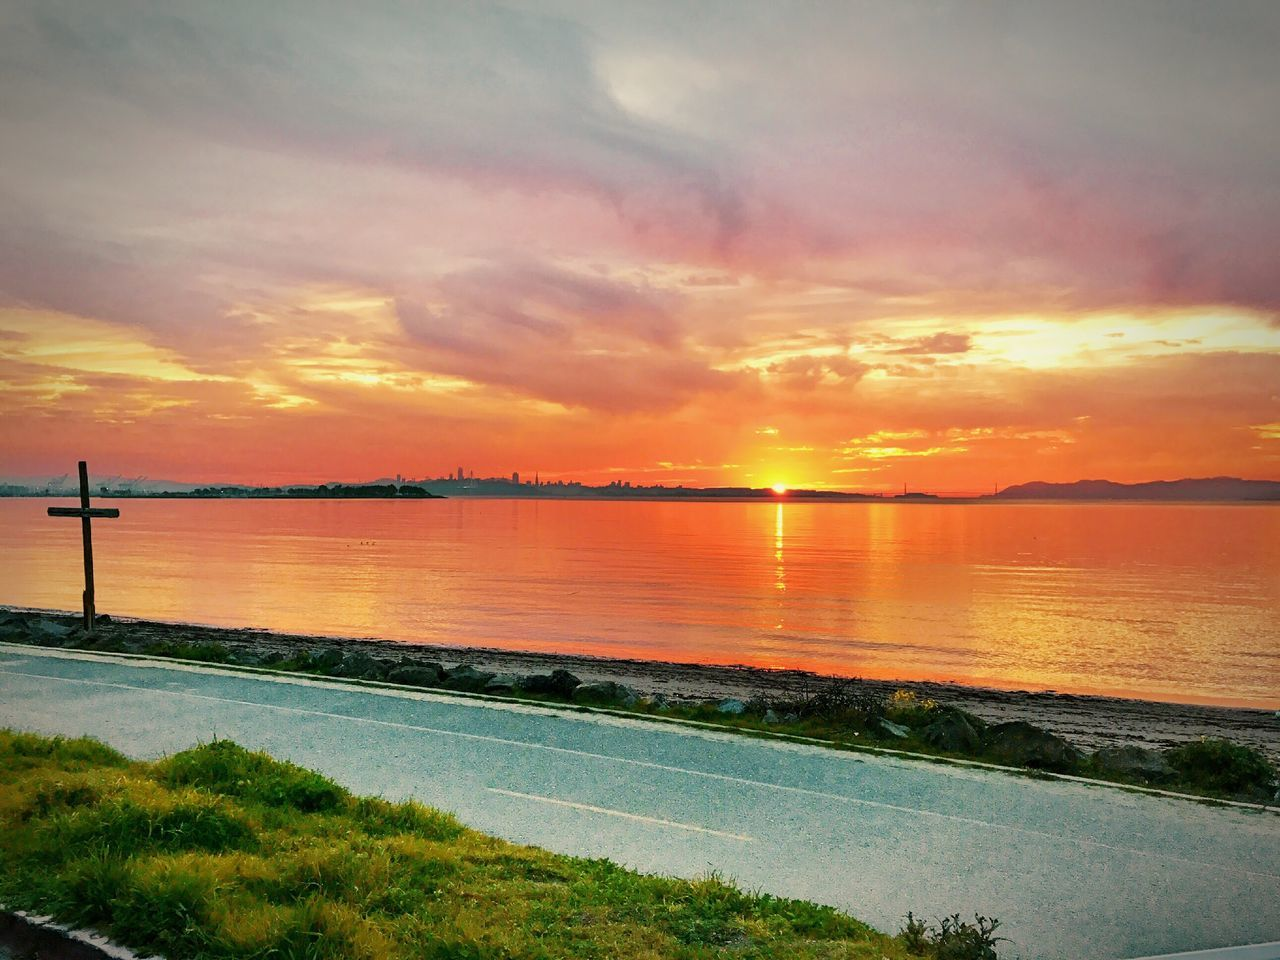 sunset, beauty in nature, scenics, sky, water, orange color, nature, tranquil scene, tranquility, idyllic, no people, sea, cloud - sky, outdoors, horizon over water, day